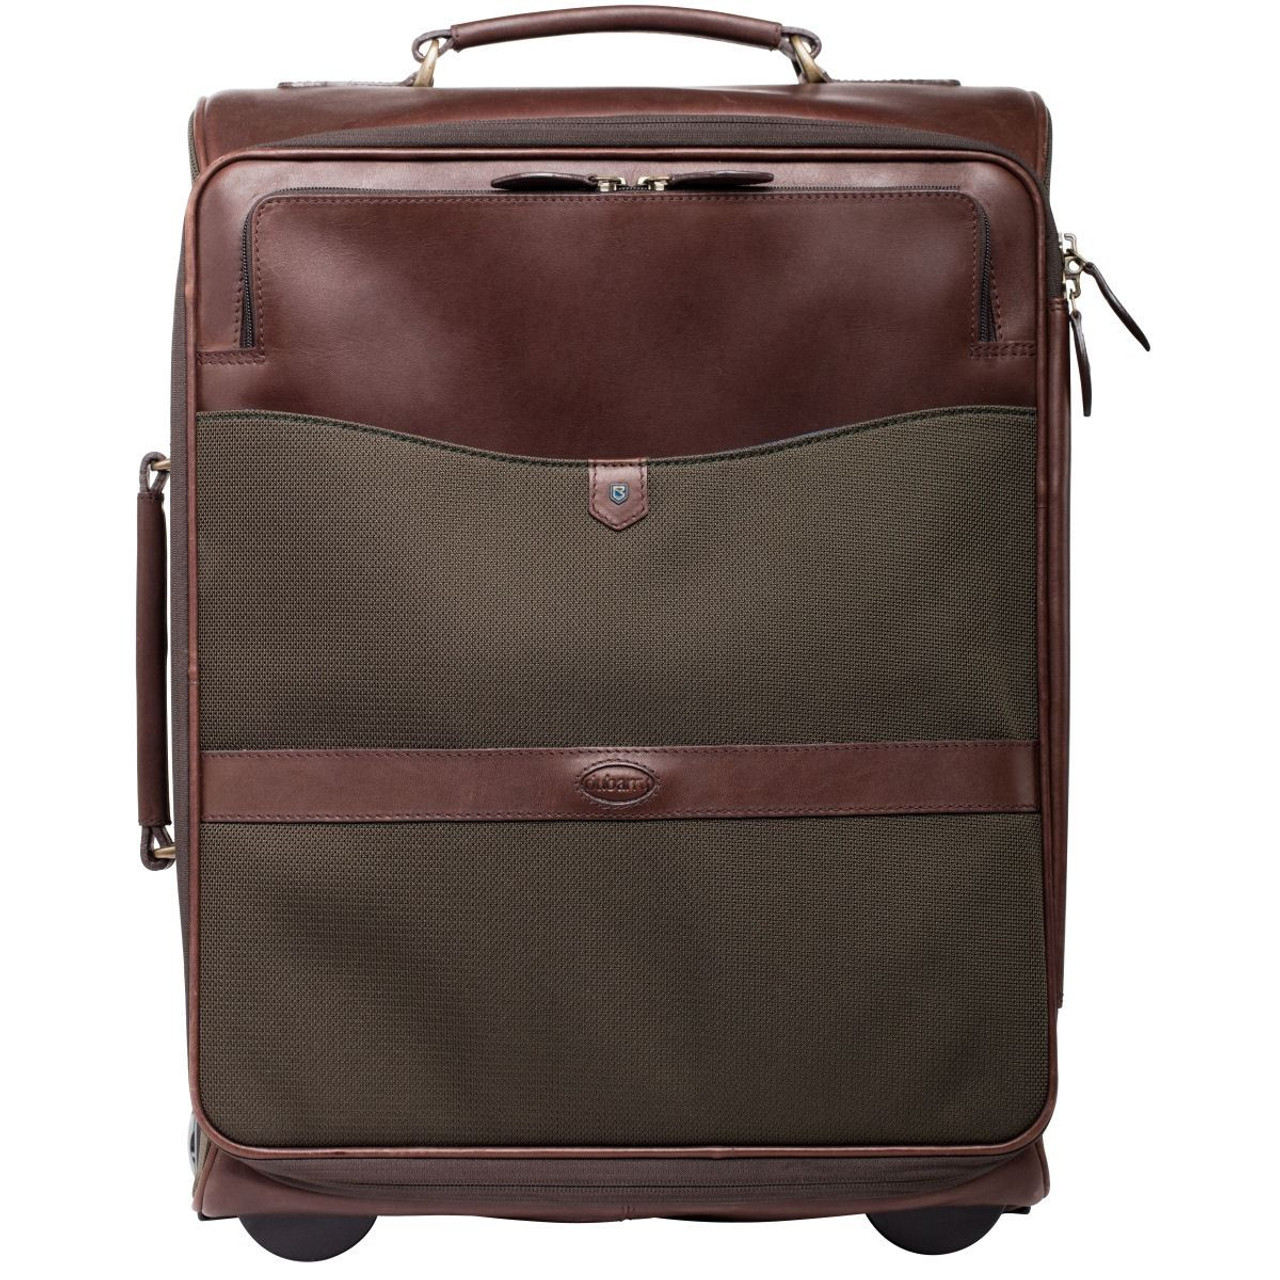 Dubarry Gulliver Cabin Trolley Case in Olive